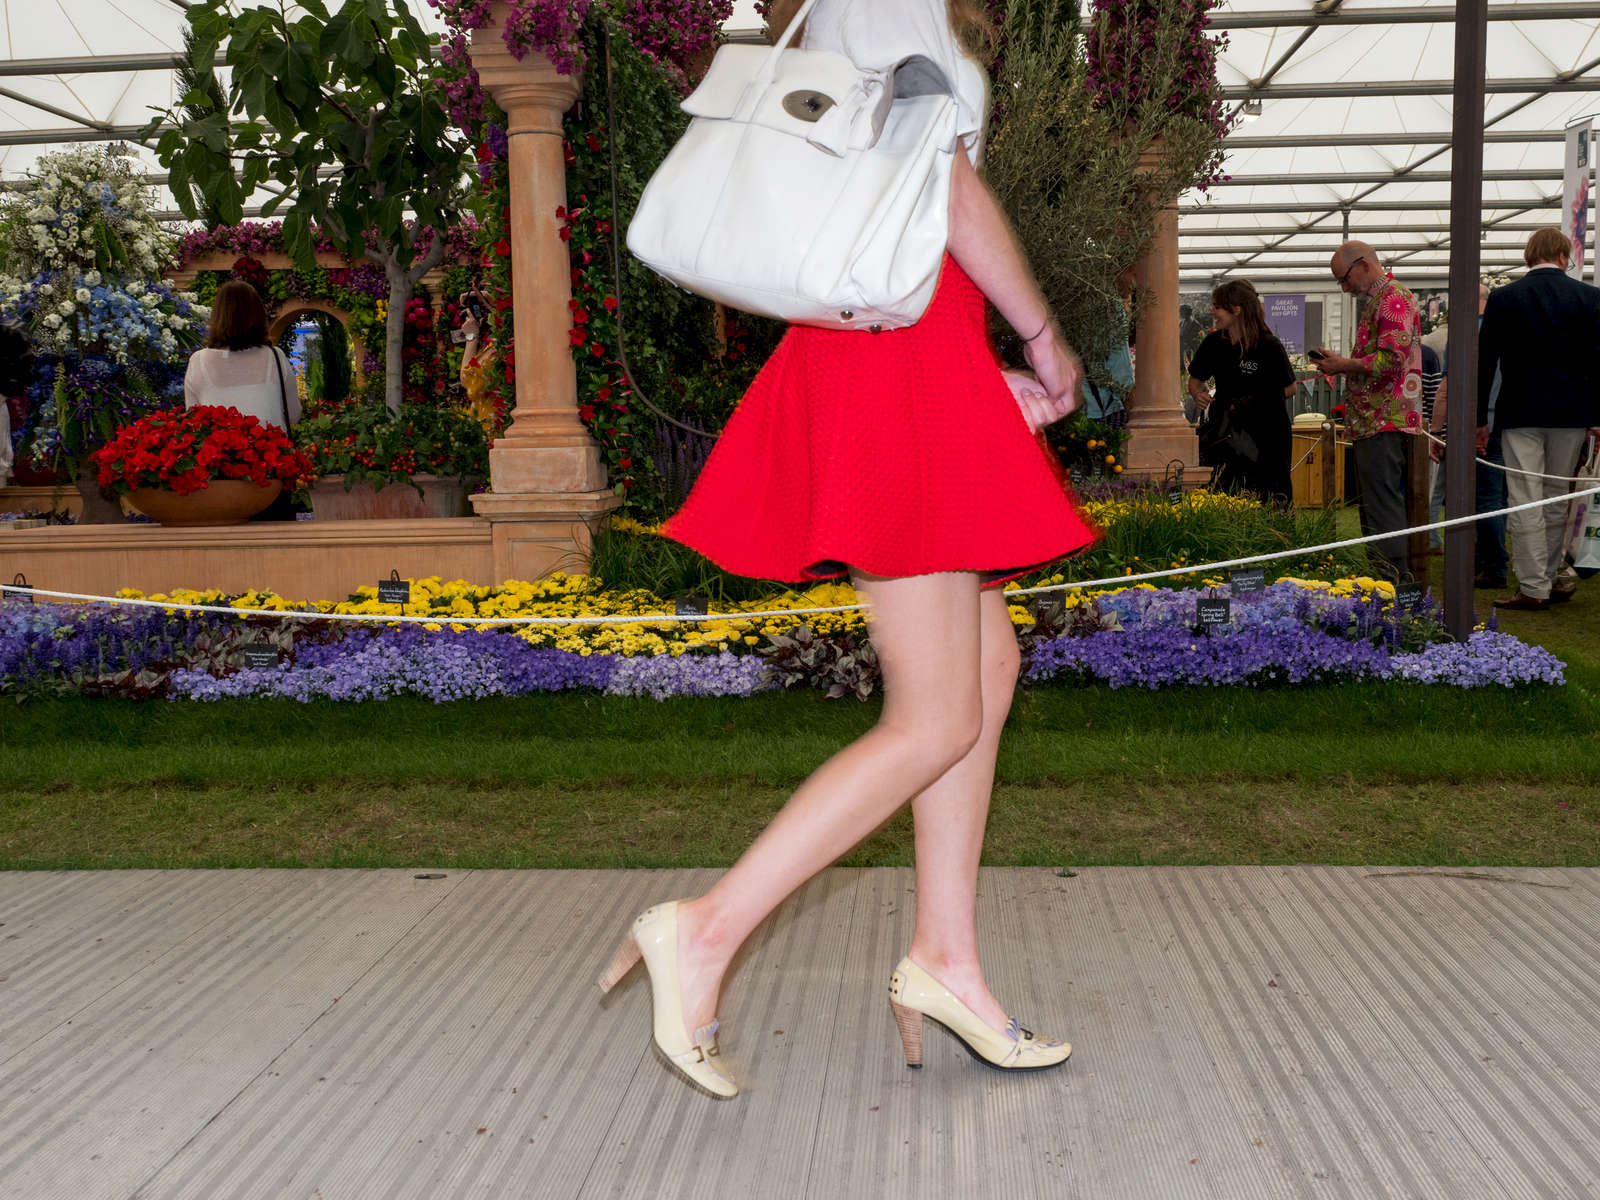 The RHS Chelsea Flower Show, is a garden show held for five days in May by the Royal Horticultural Society in the grounds of the Royal Hospital Chelsea in London.